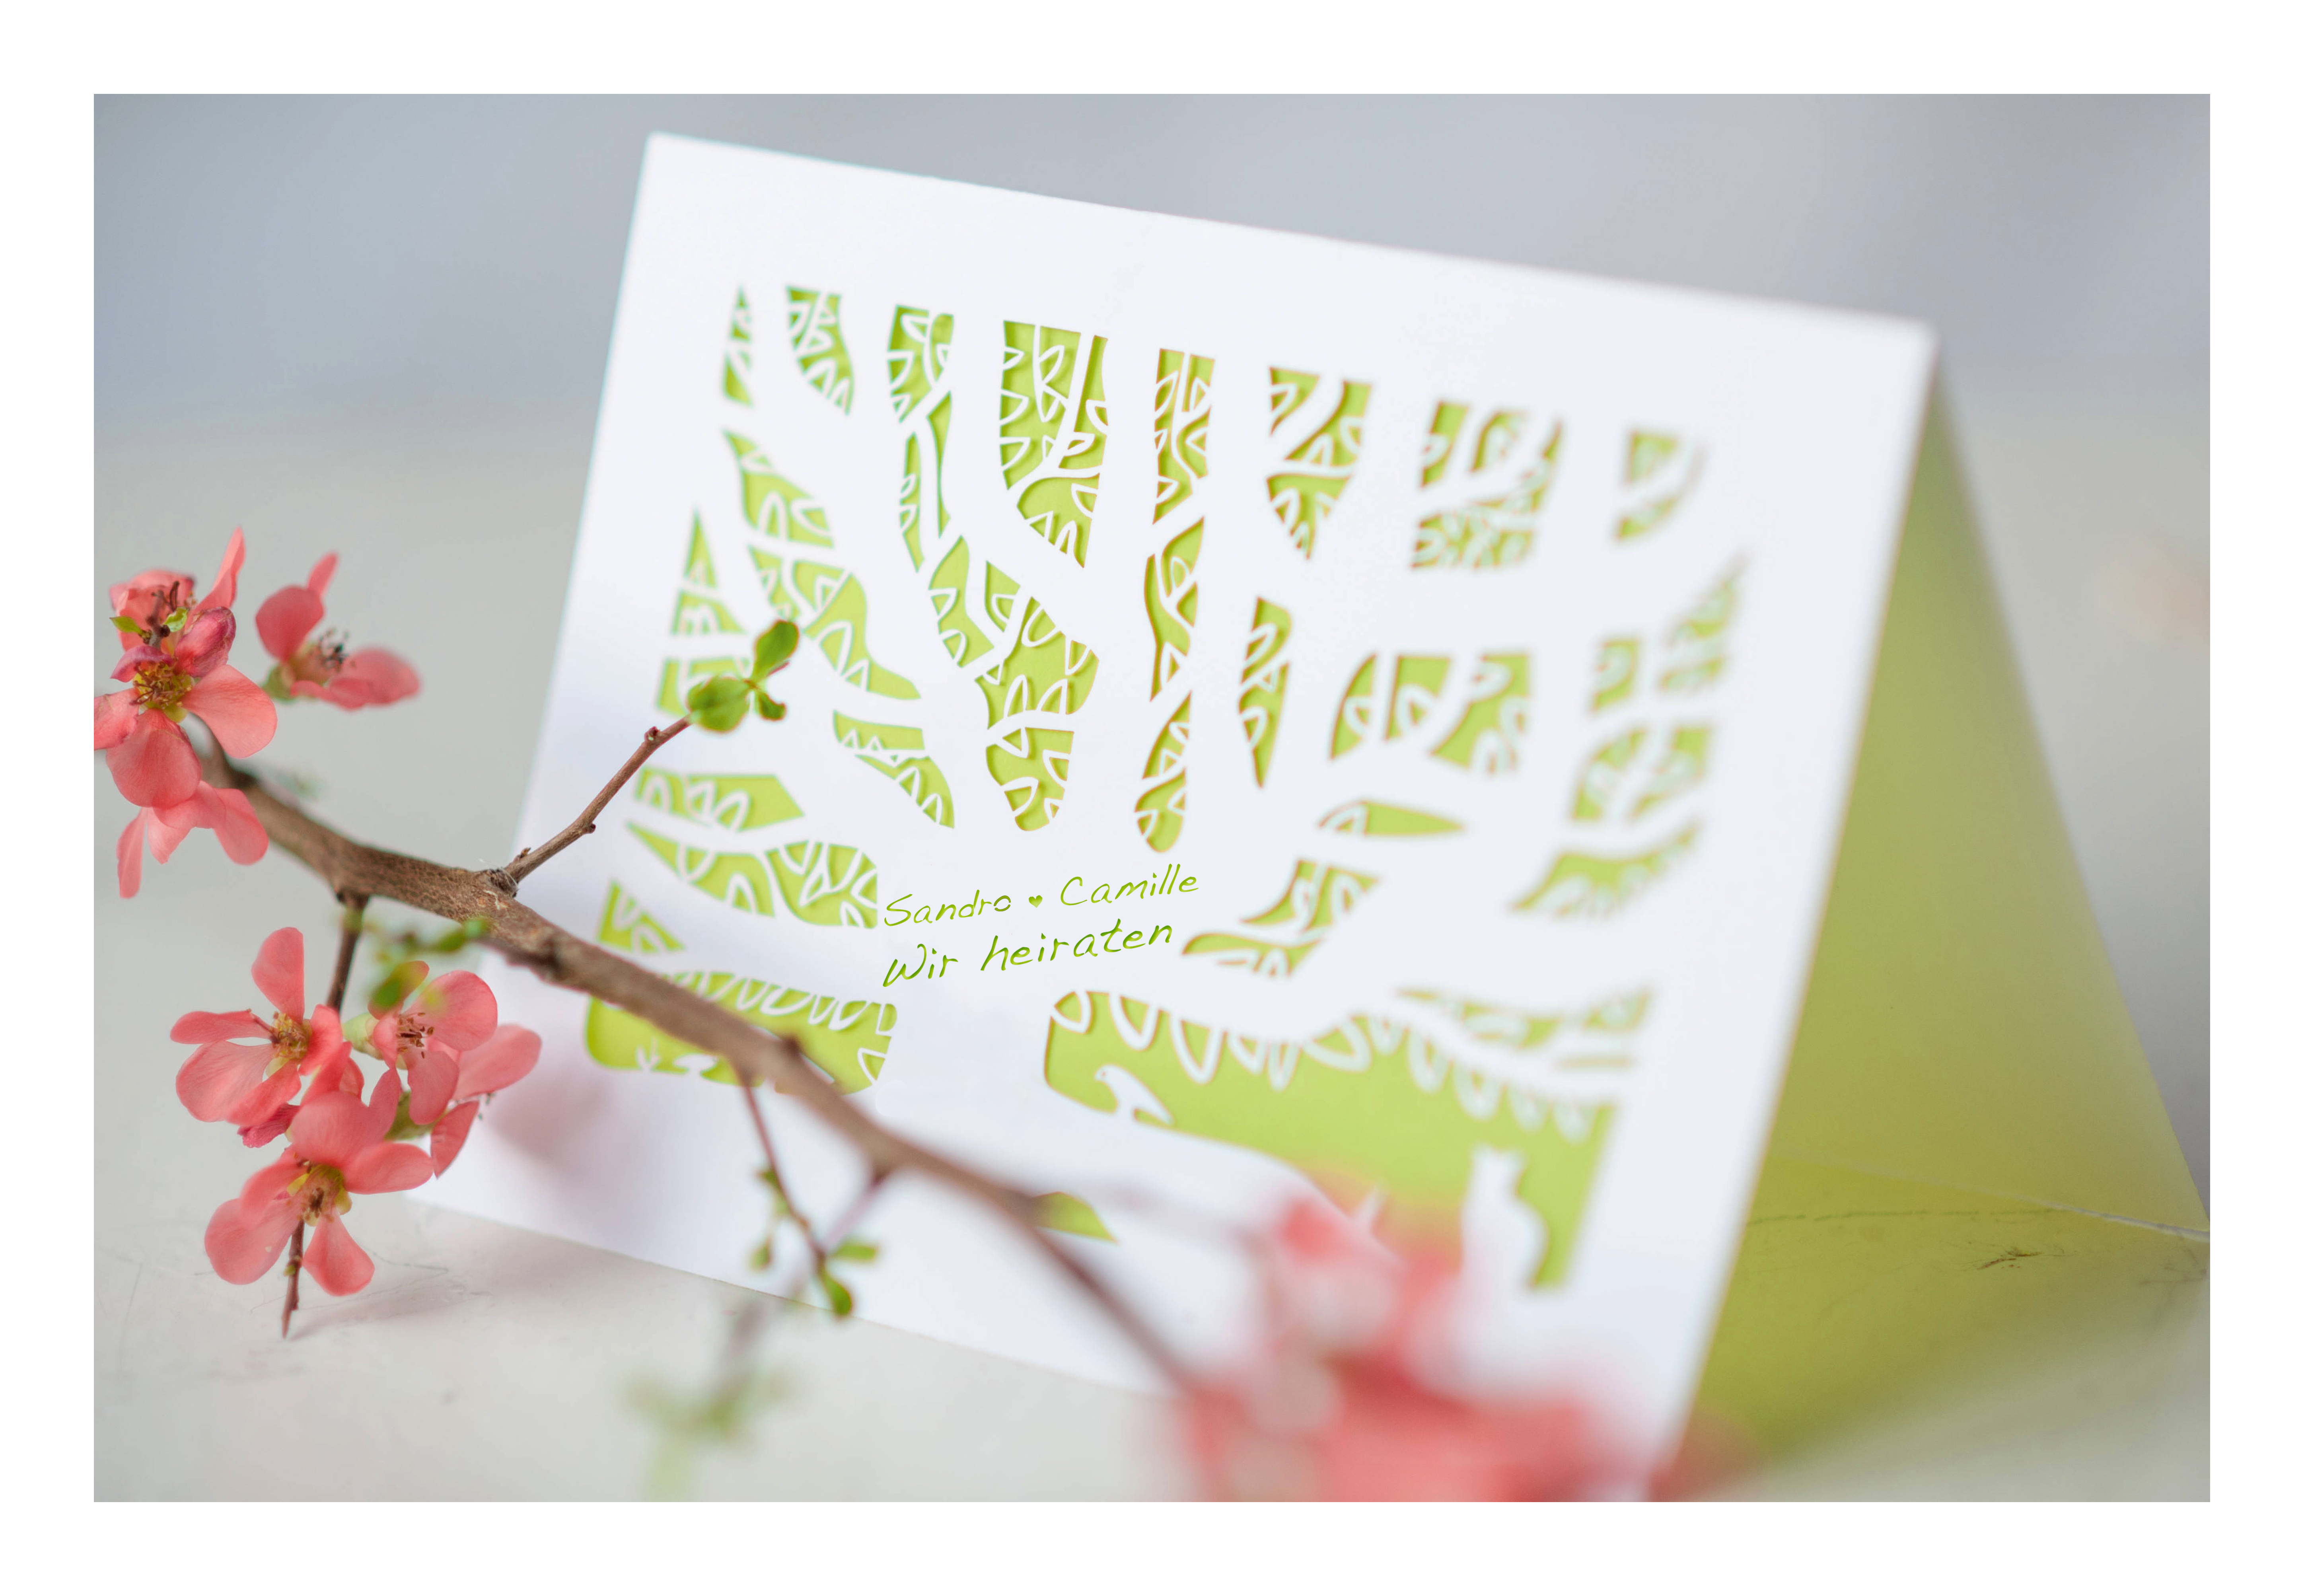 Coupure baby art tree of life wedding card coupure baby art tree of life wedding card kristyandbryce Gallery